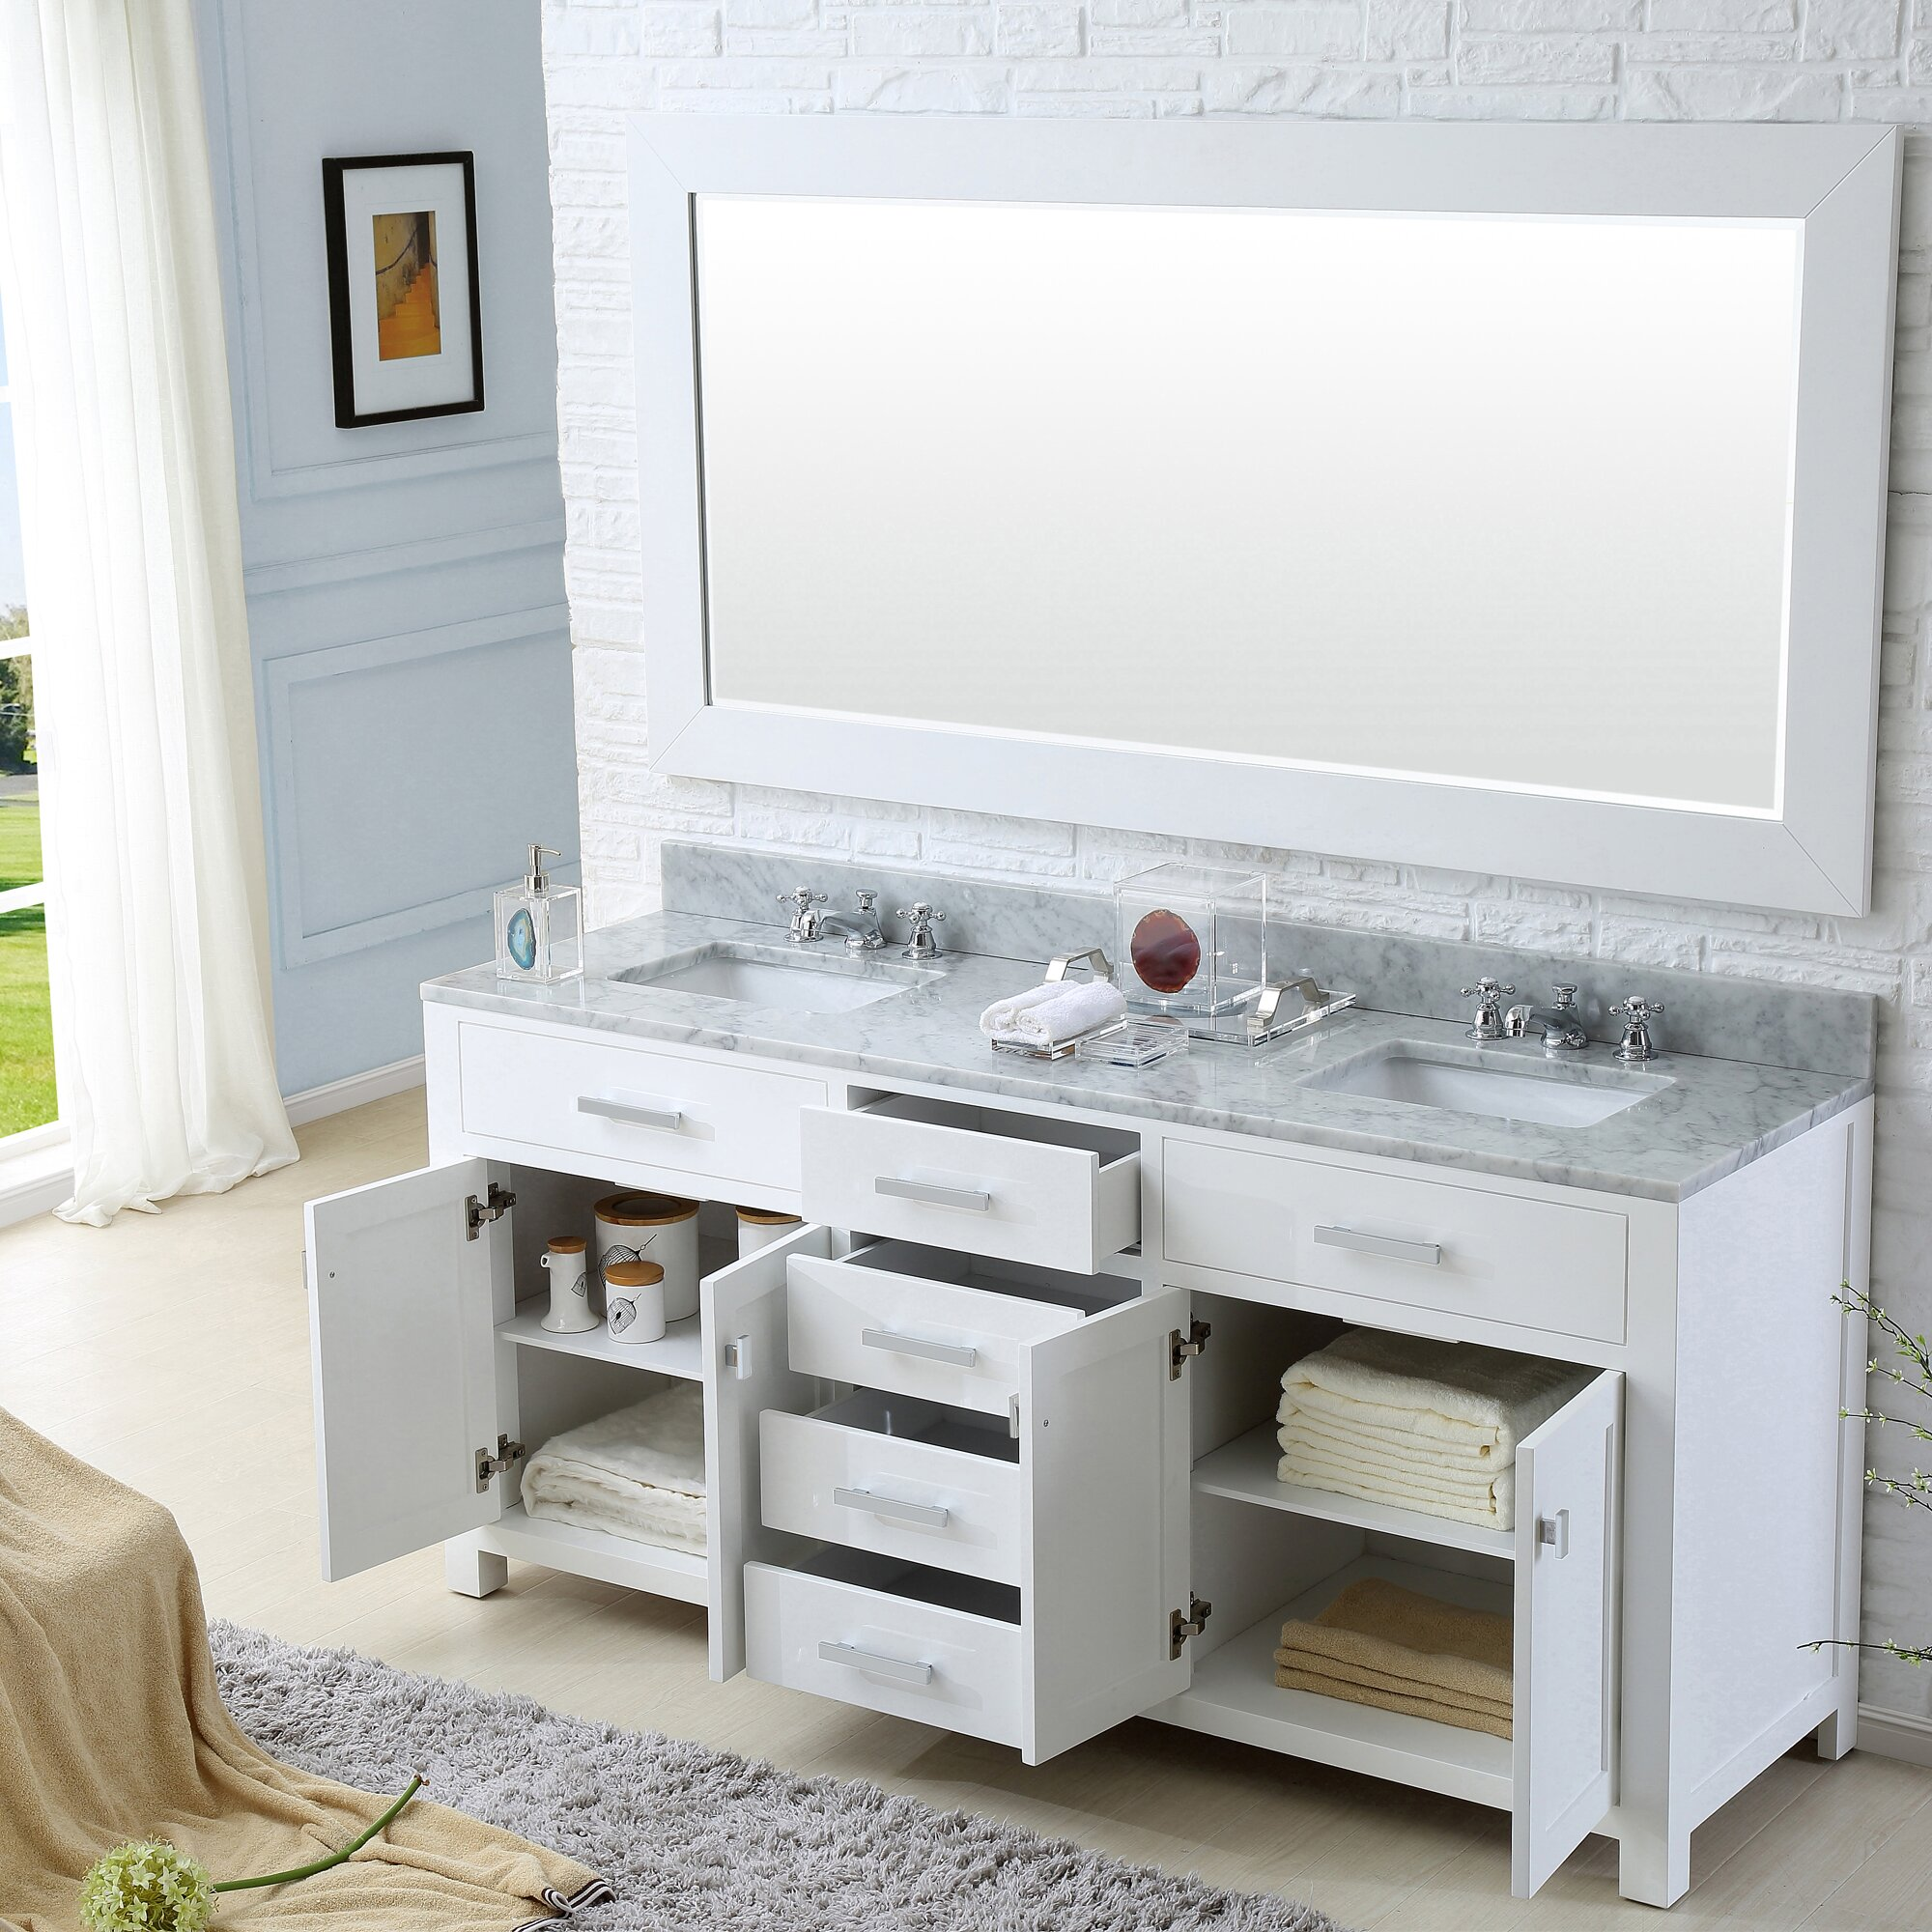 Bathroom Vanities Grand Rapids Mi bathroom vanities grand rapids mi - bathroom design